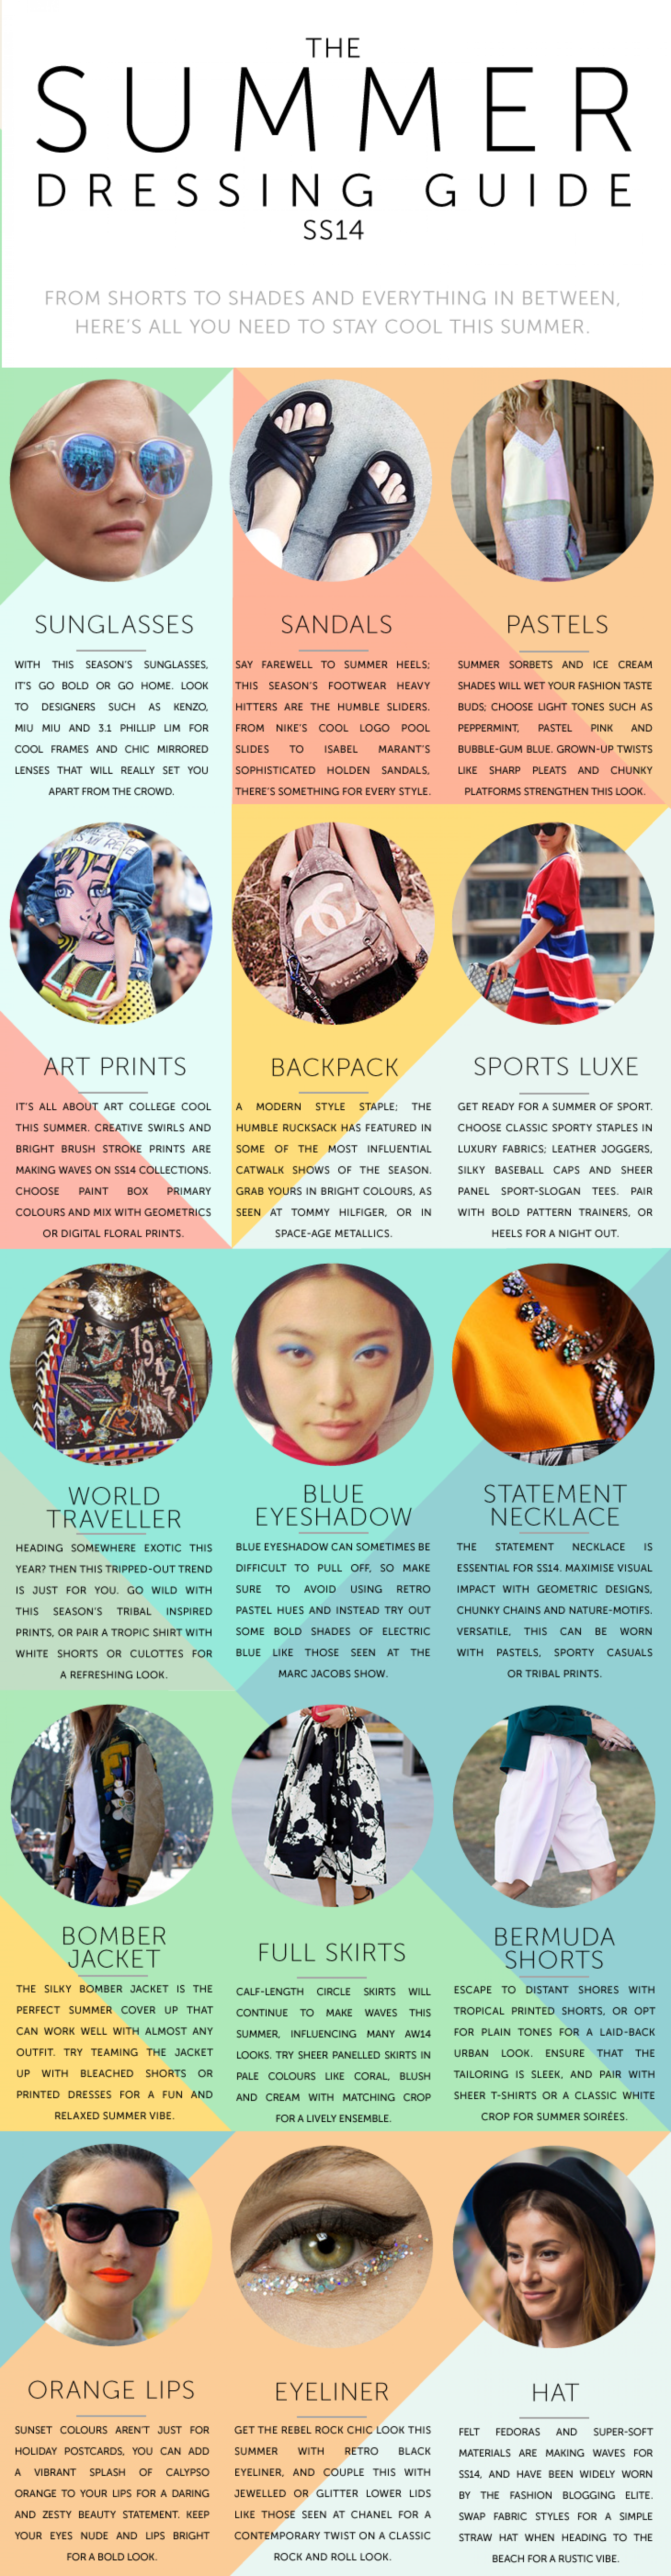 The Summer Dressing Guide Infographic